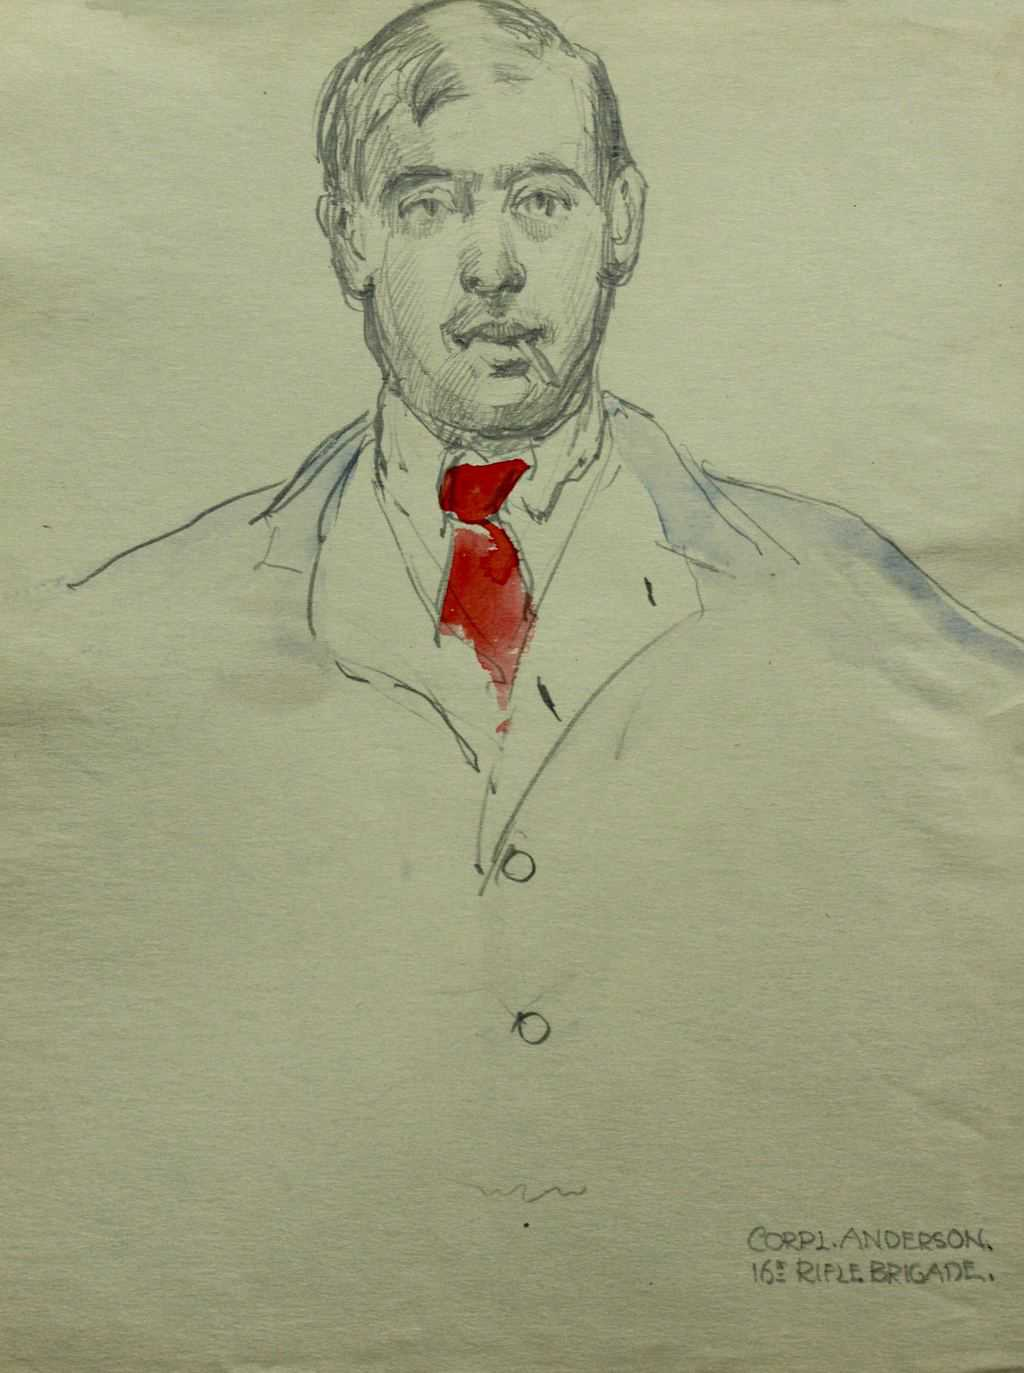 Sketch of Corporal Anderson 16th Rifle Brigade